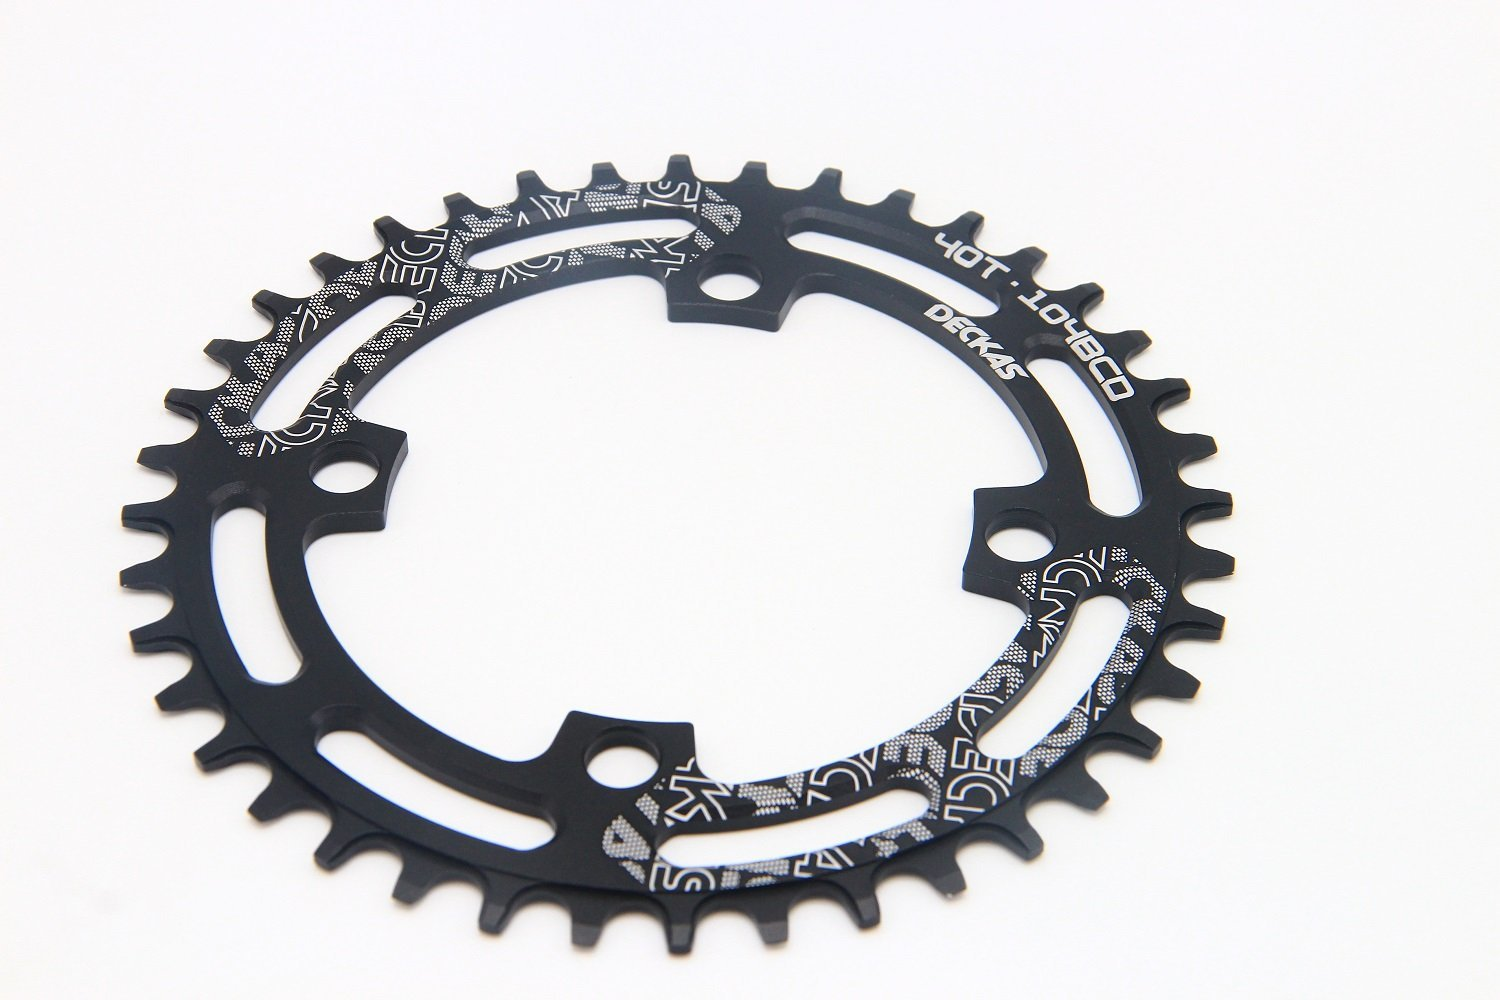 Alomejor Narrow Wide Chainring 96BCD 32//34//36T Single Chainring Mountain Bike Bicycle Single Speed Chain Ring